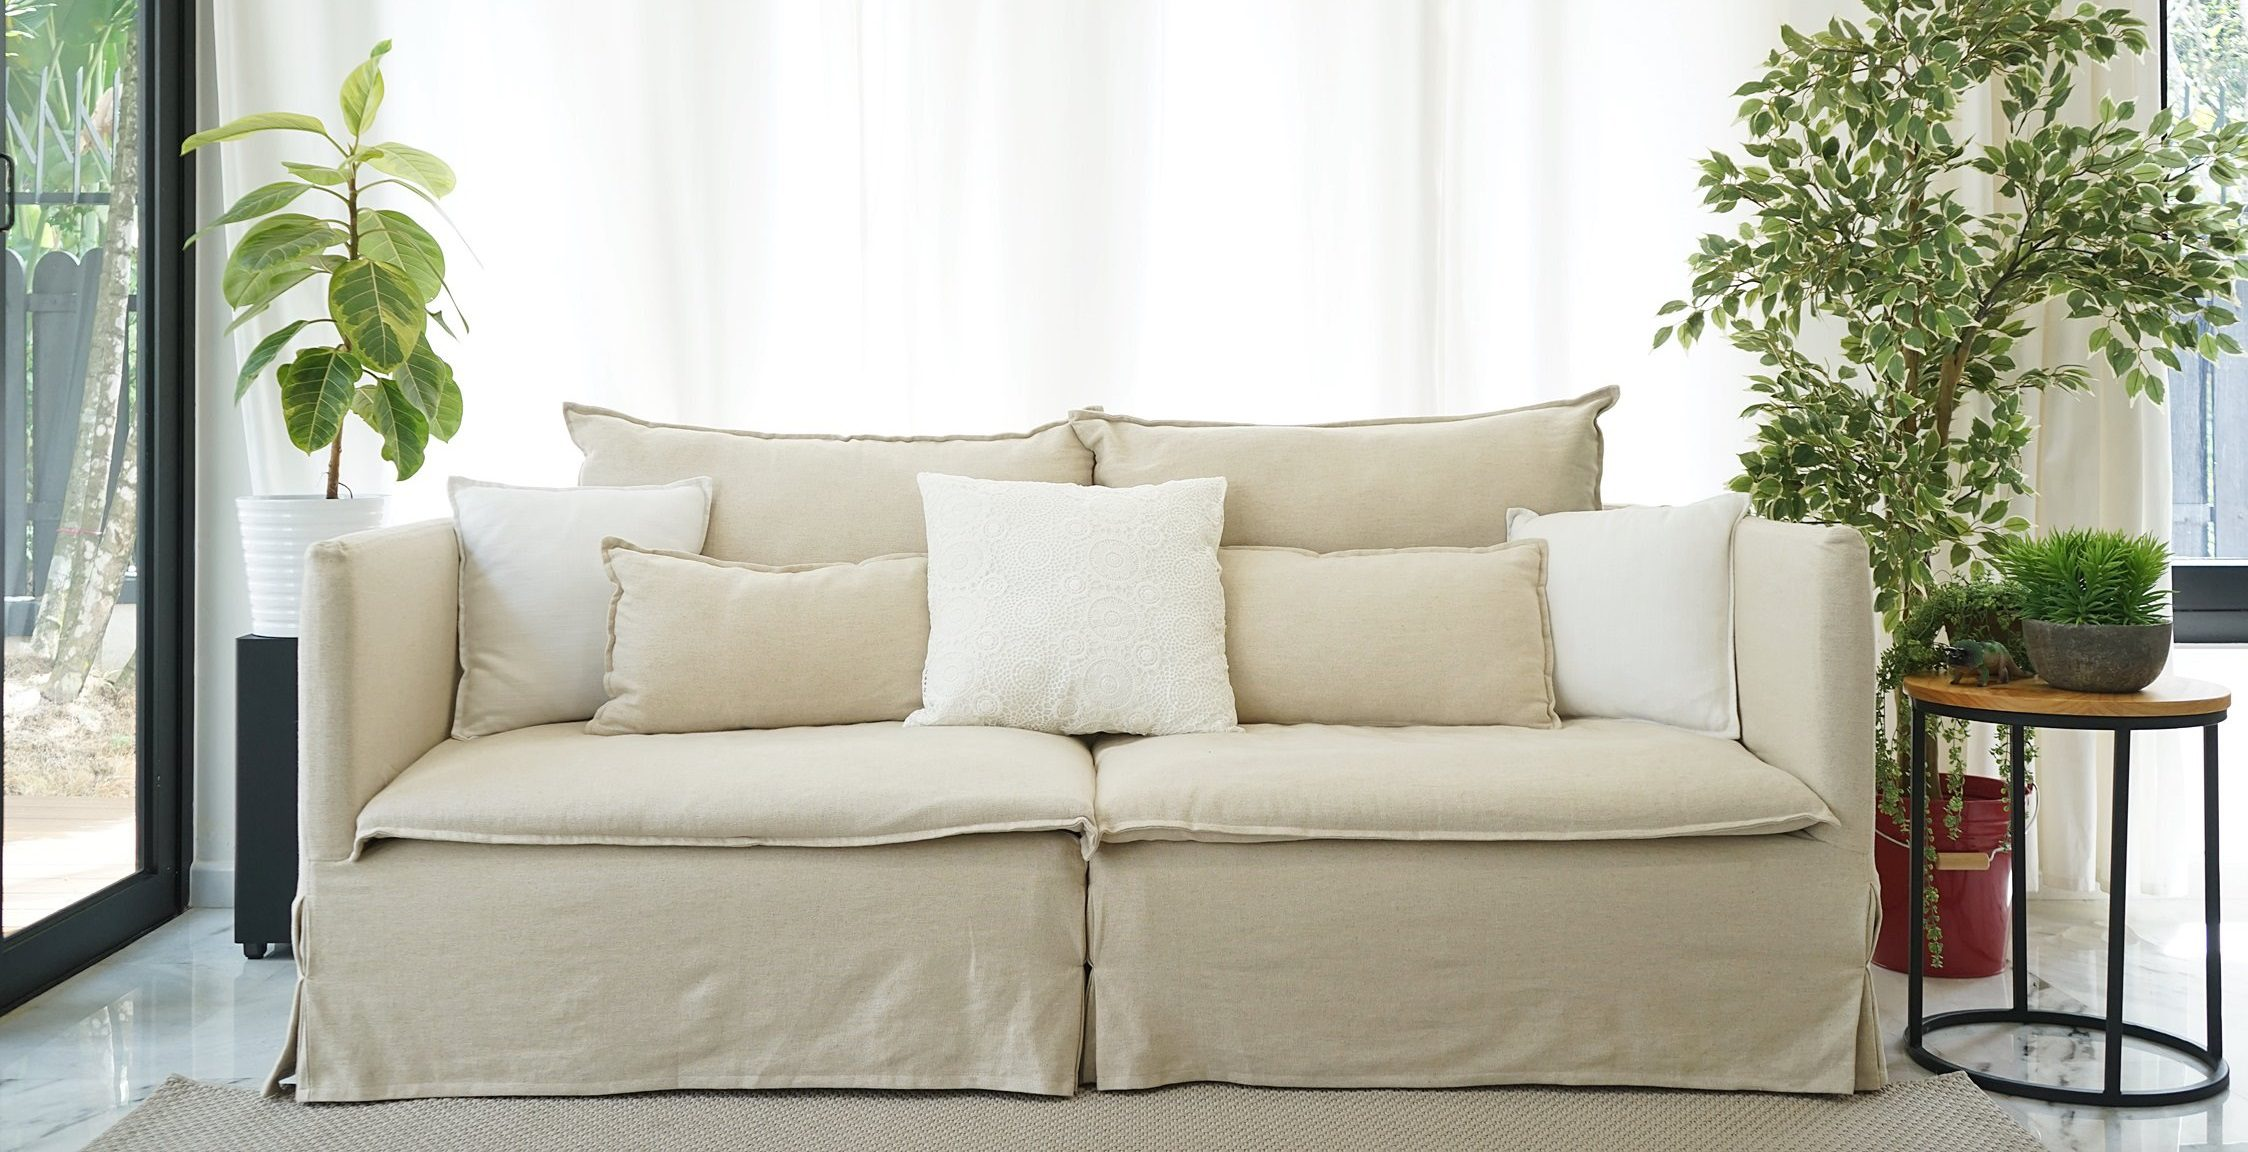 Top 10 Slipcovered Sofa Brands A